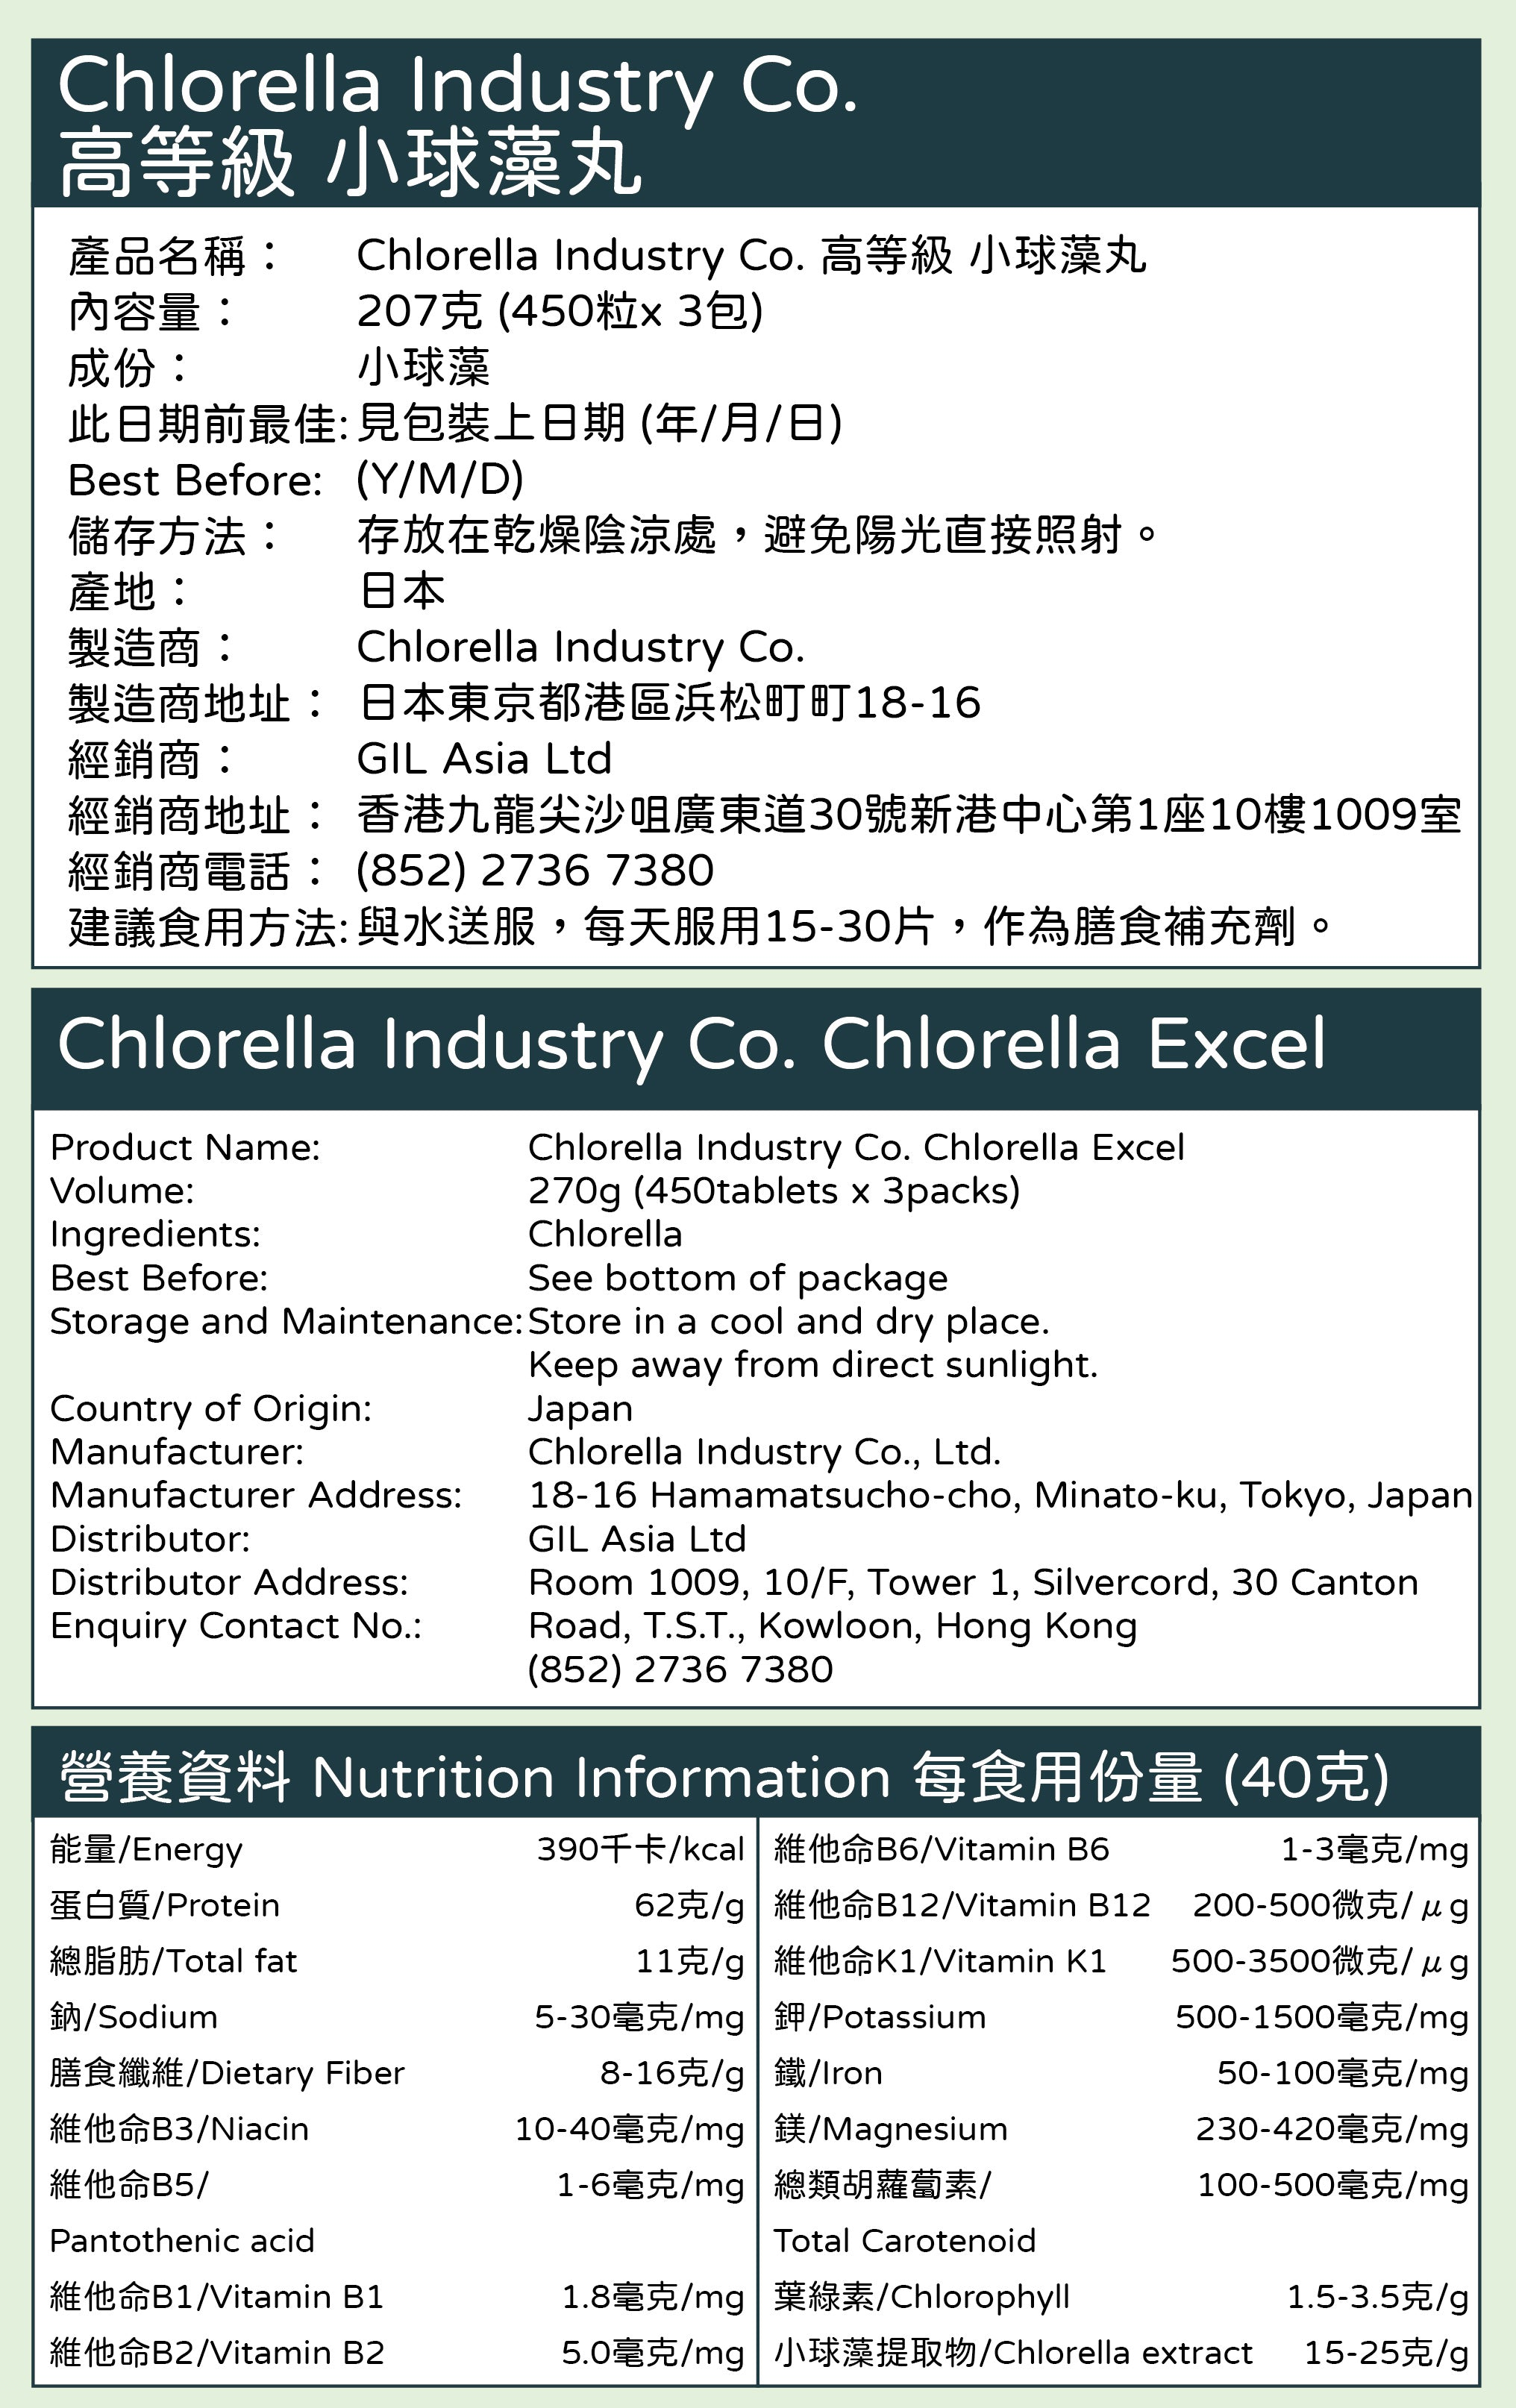 Chlorella Industry Co. 高等級 小球藻丸